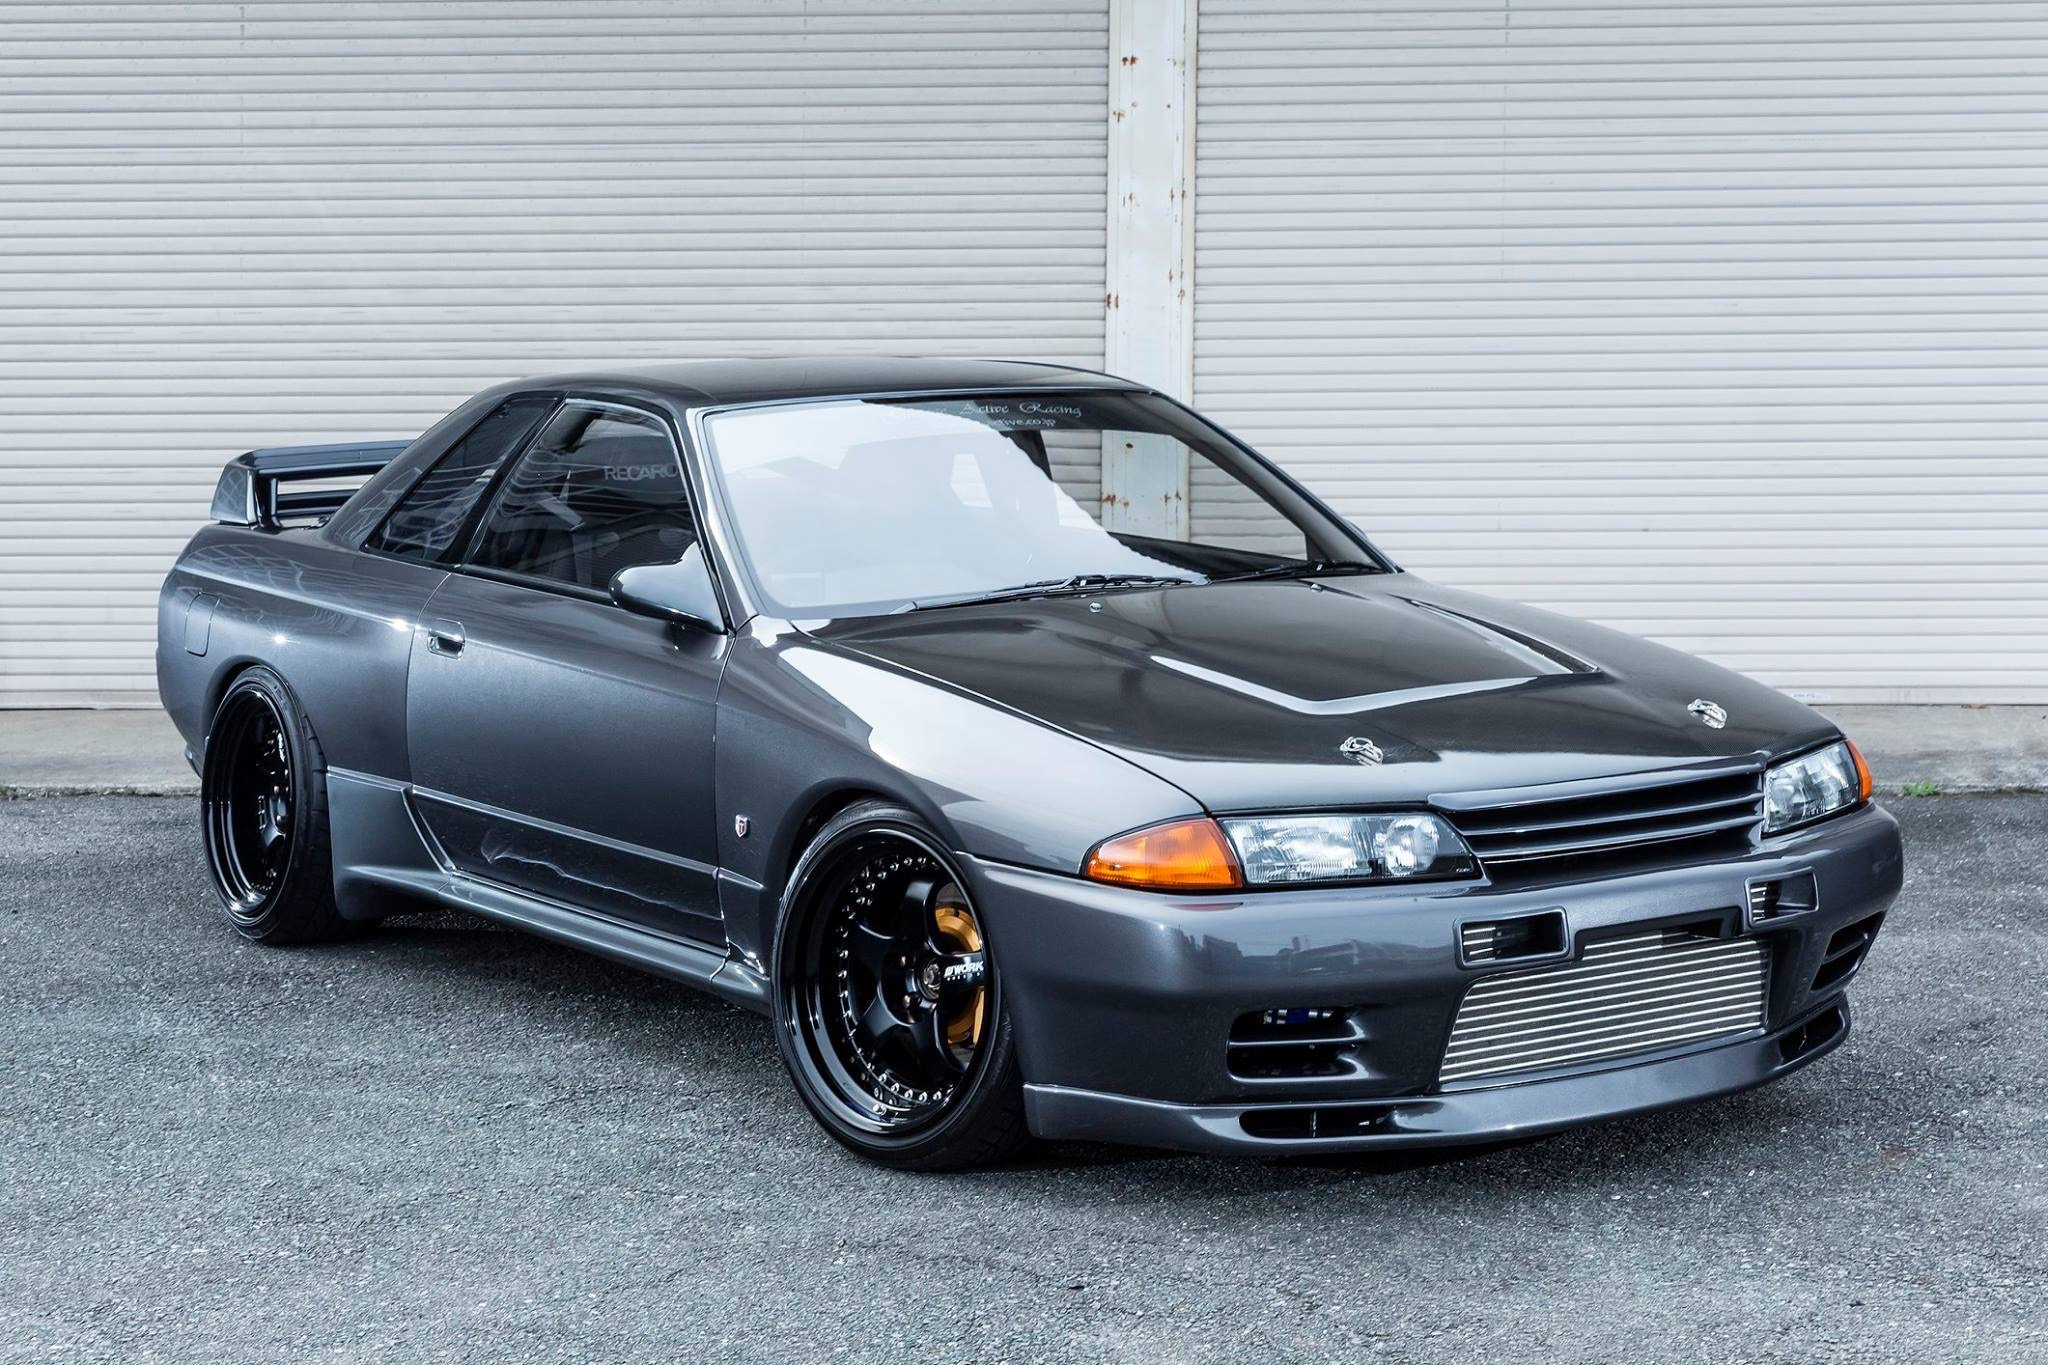 What side skirts are these? - RB Series - R31, R32, R33, R34